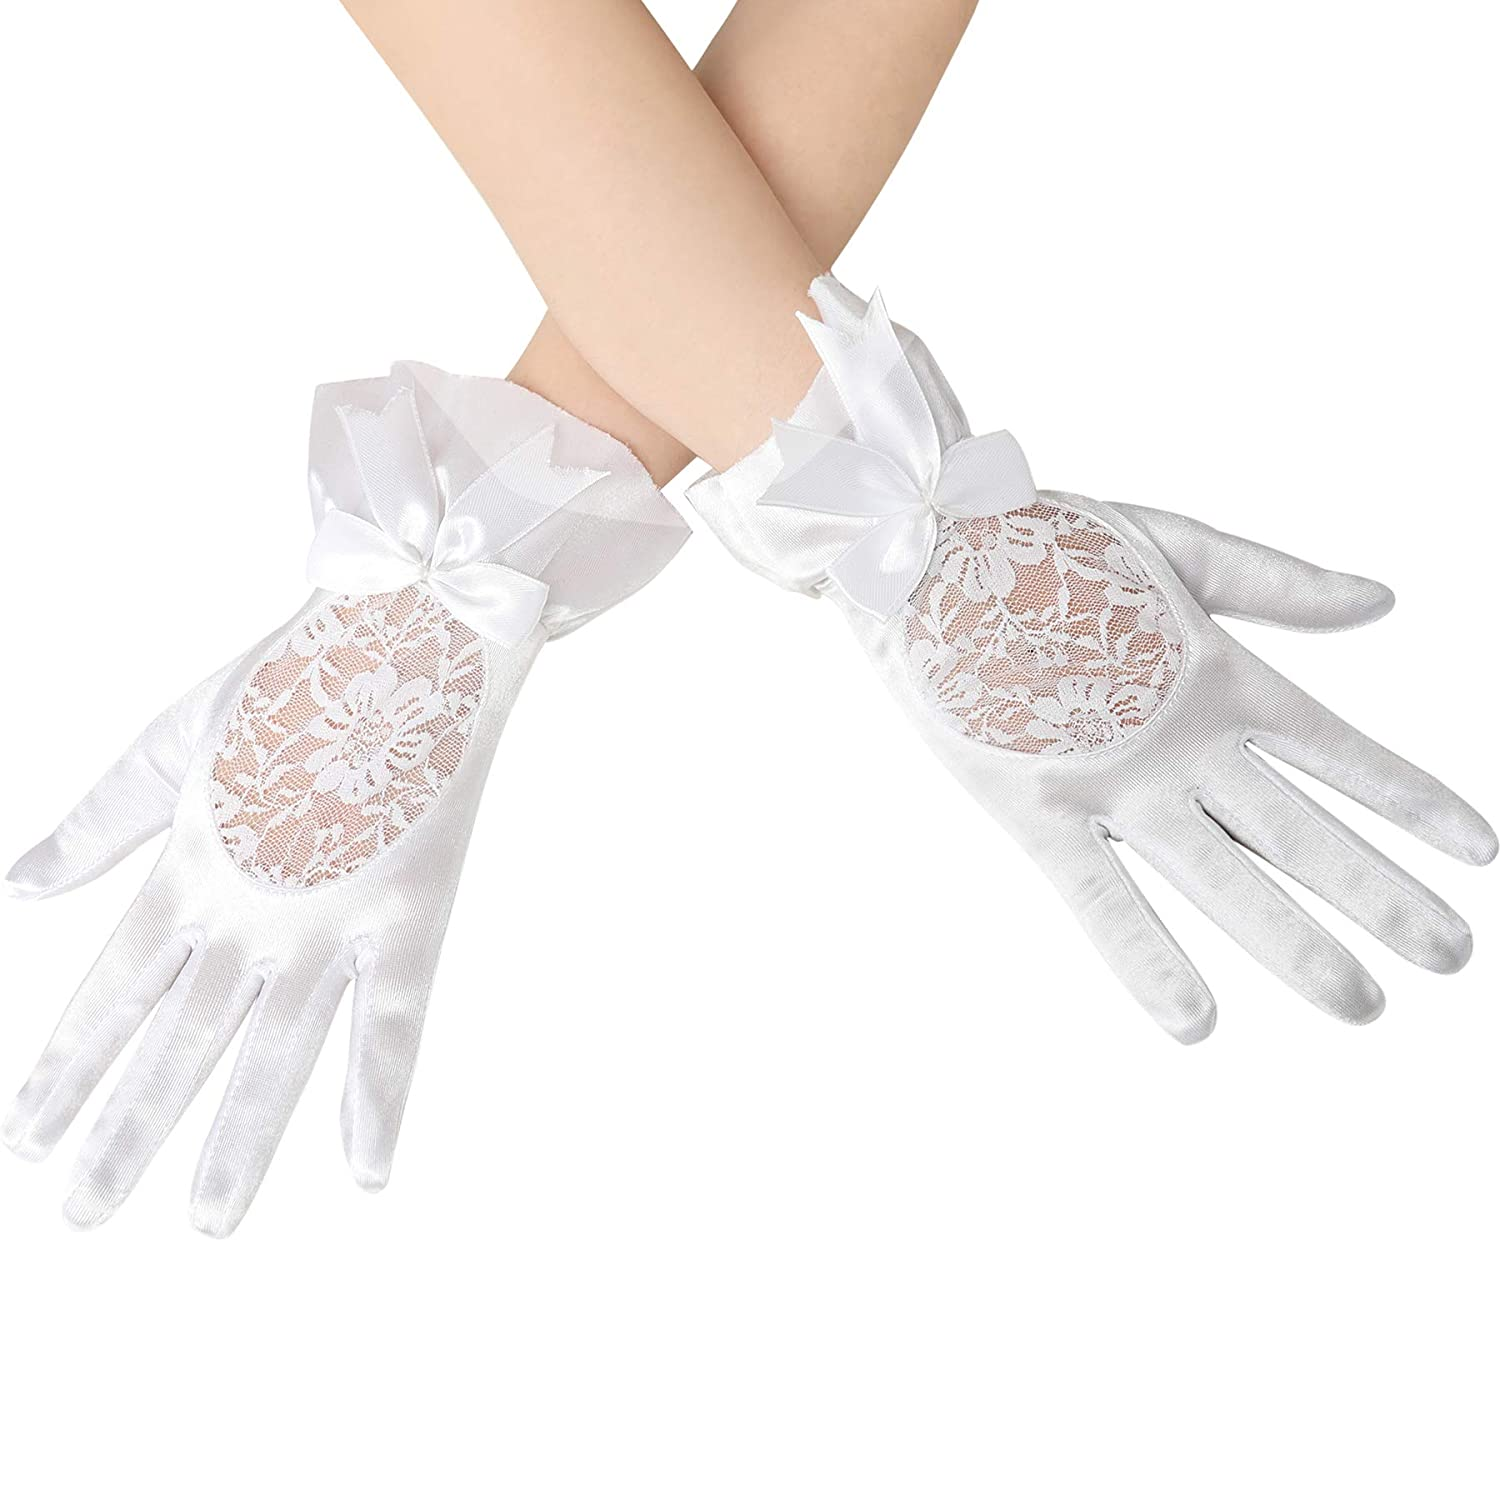 BABEYOND Floral Lace Gloves for Wedding Opera Party 1920s Flapper Lace Gloves Stretchy Satin Gloves Adult Size